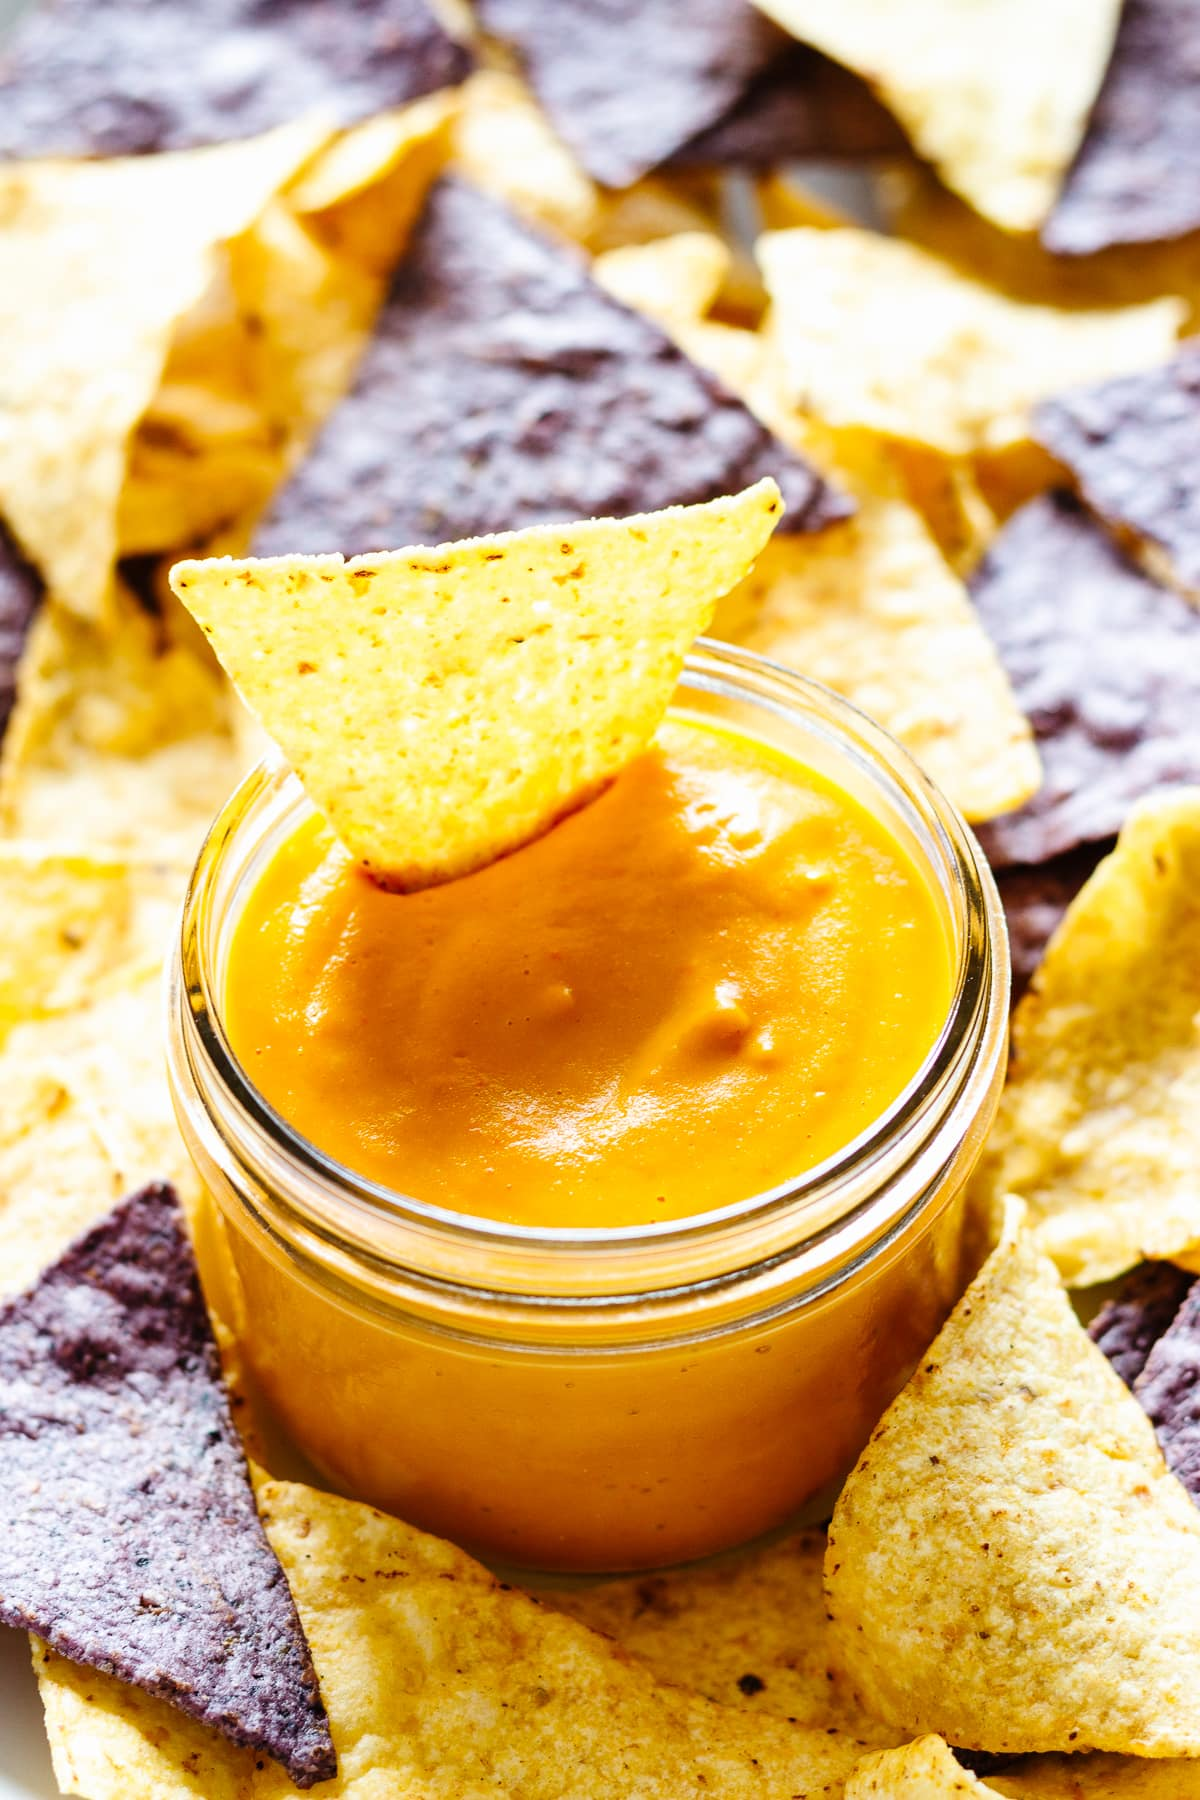 Mason jar filled with vegan nacho cheese sauce and surrounded by yellow and blue corn tortilla chips